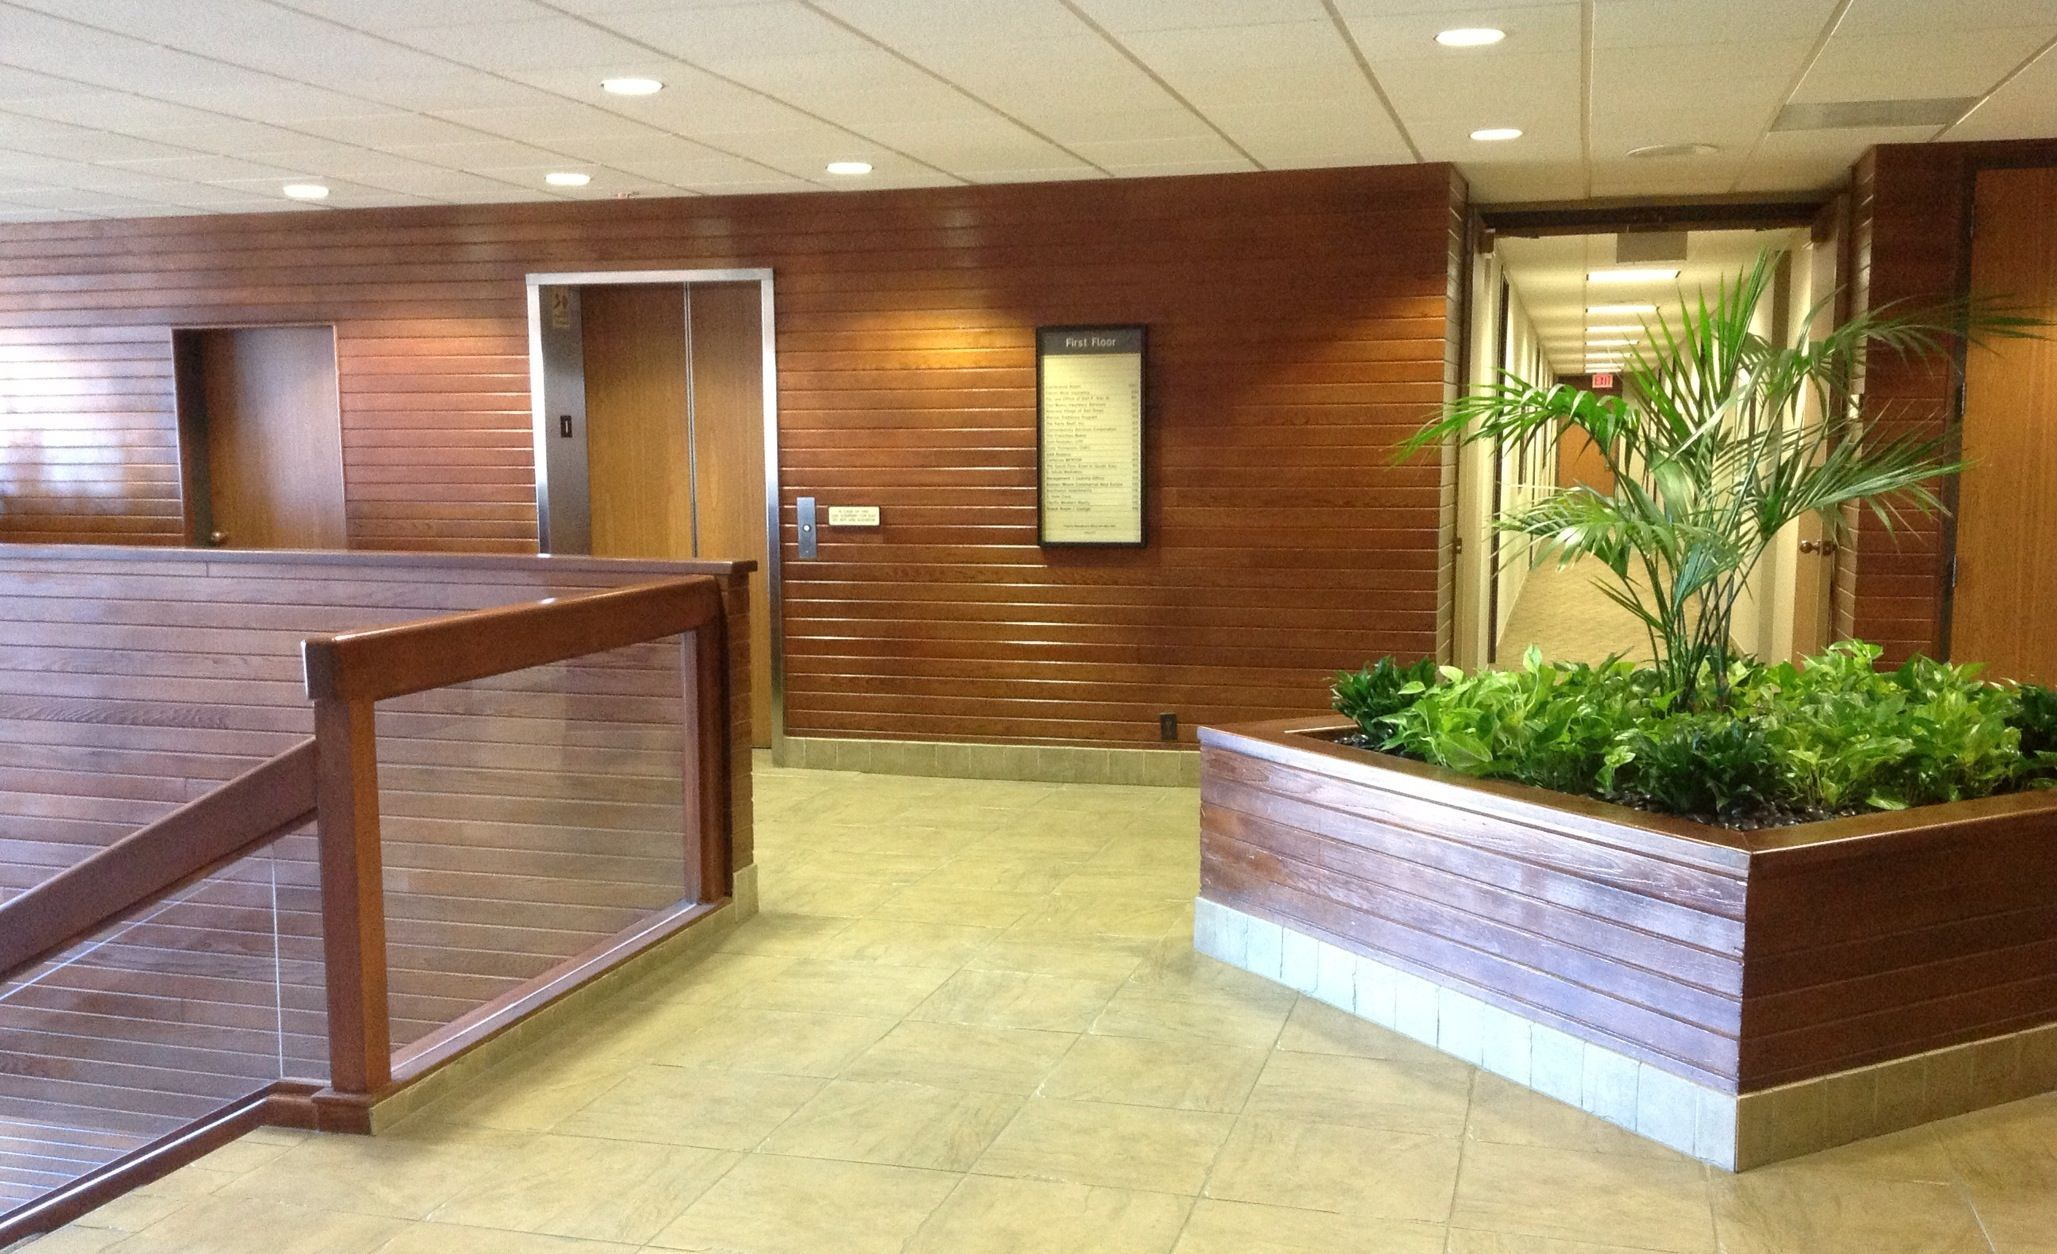 Commercial Office Design Ideas. Interior Office Design Commercial ...